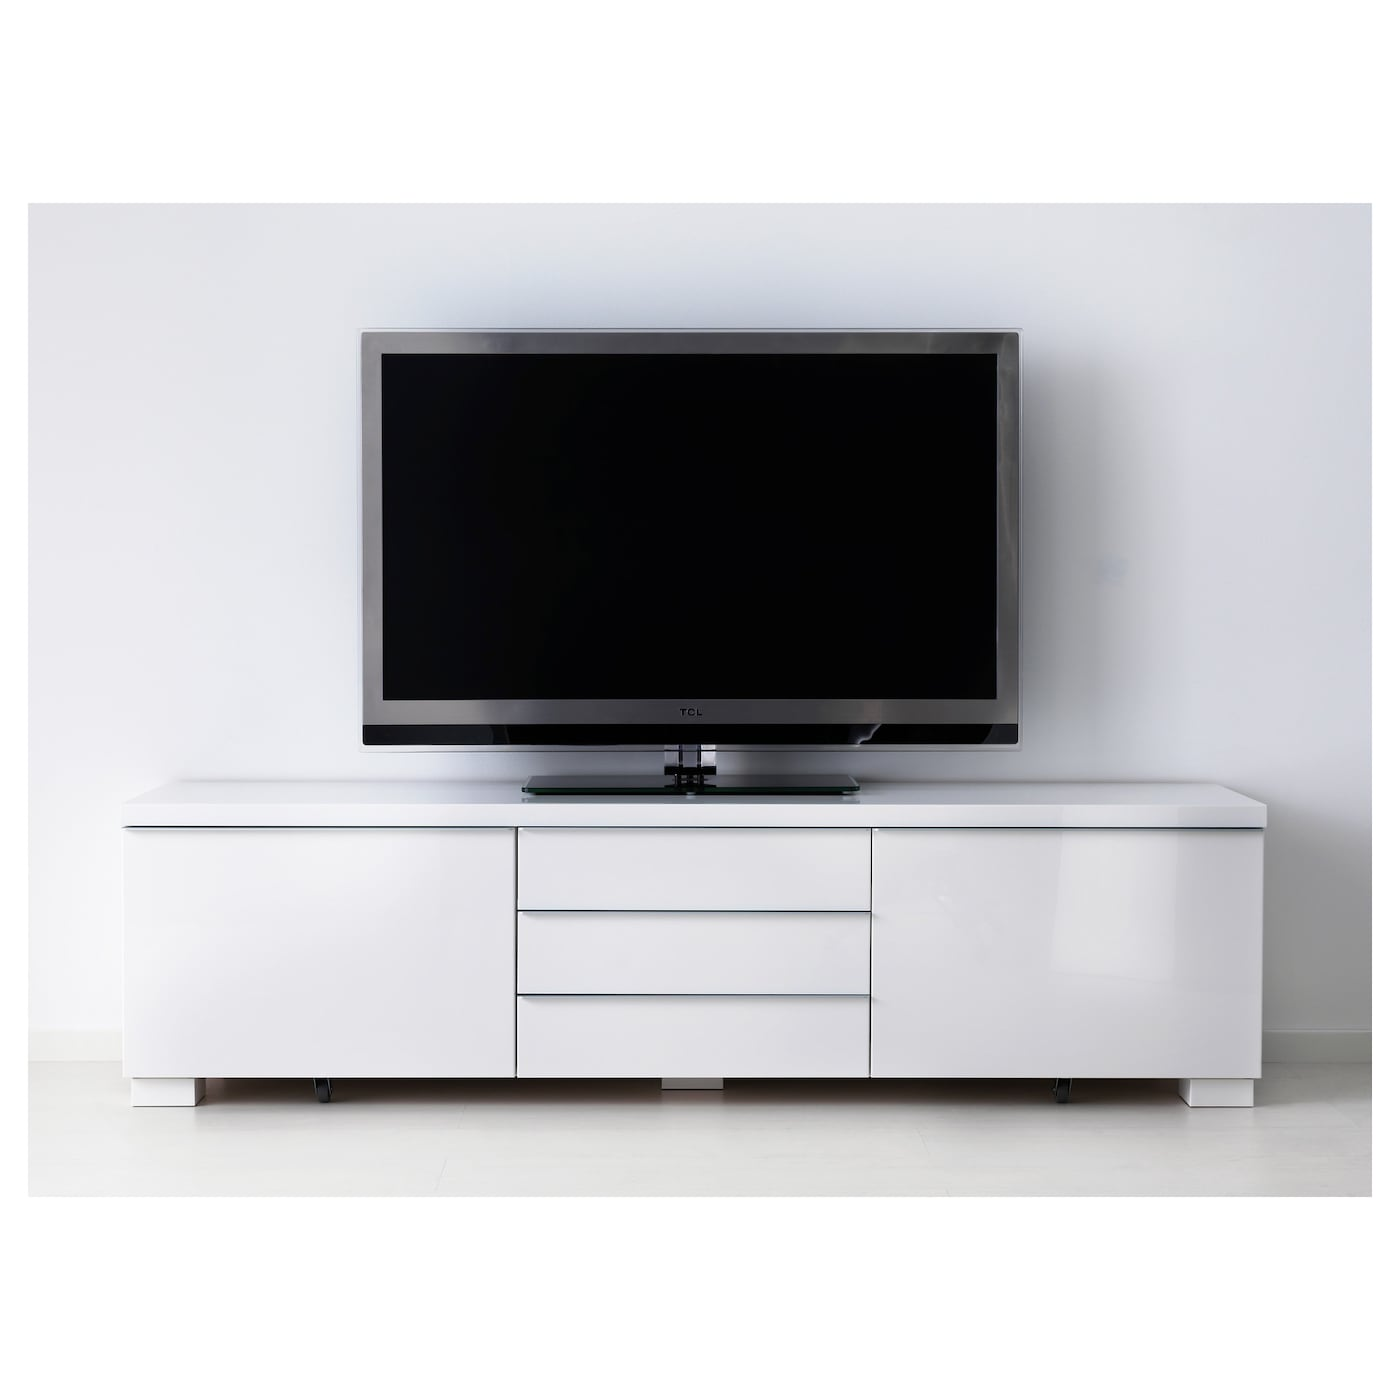 Meuble Tv Ikea Laque - Best Burs Banc Tv Brillant Blanc 180×41 Cm Ikea[mjhdah]http://bfrench.info/wp-content/uploads/2017/12/meubles-tv-ensemble-mural-tv-ikea-ikea-meuble-television-meuble-tv-ikea-of-meubles-tv.jpg